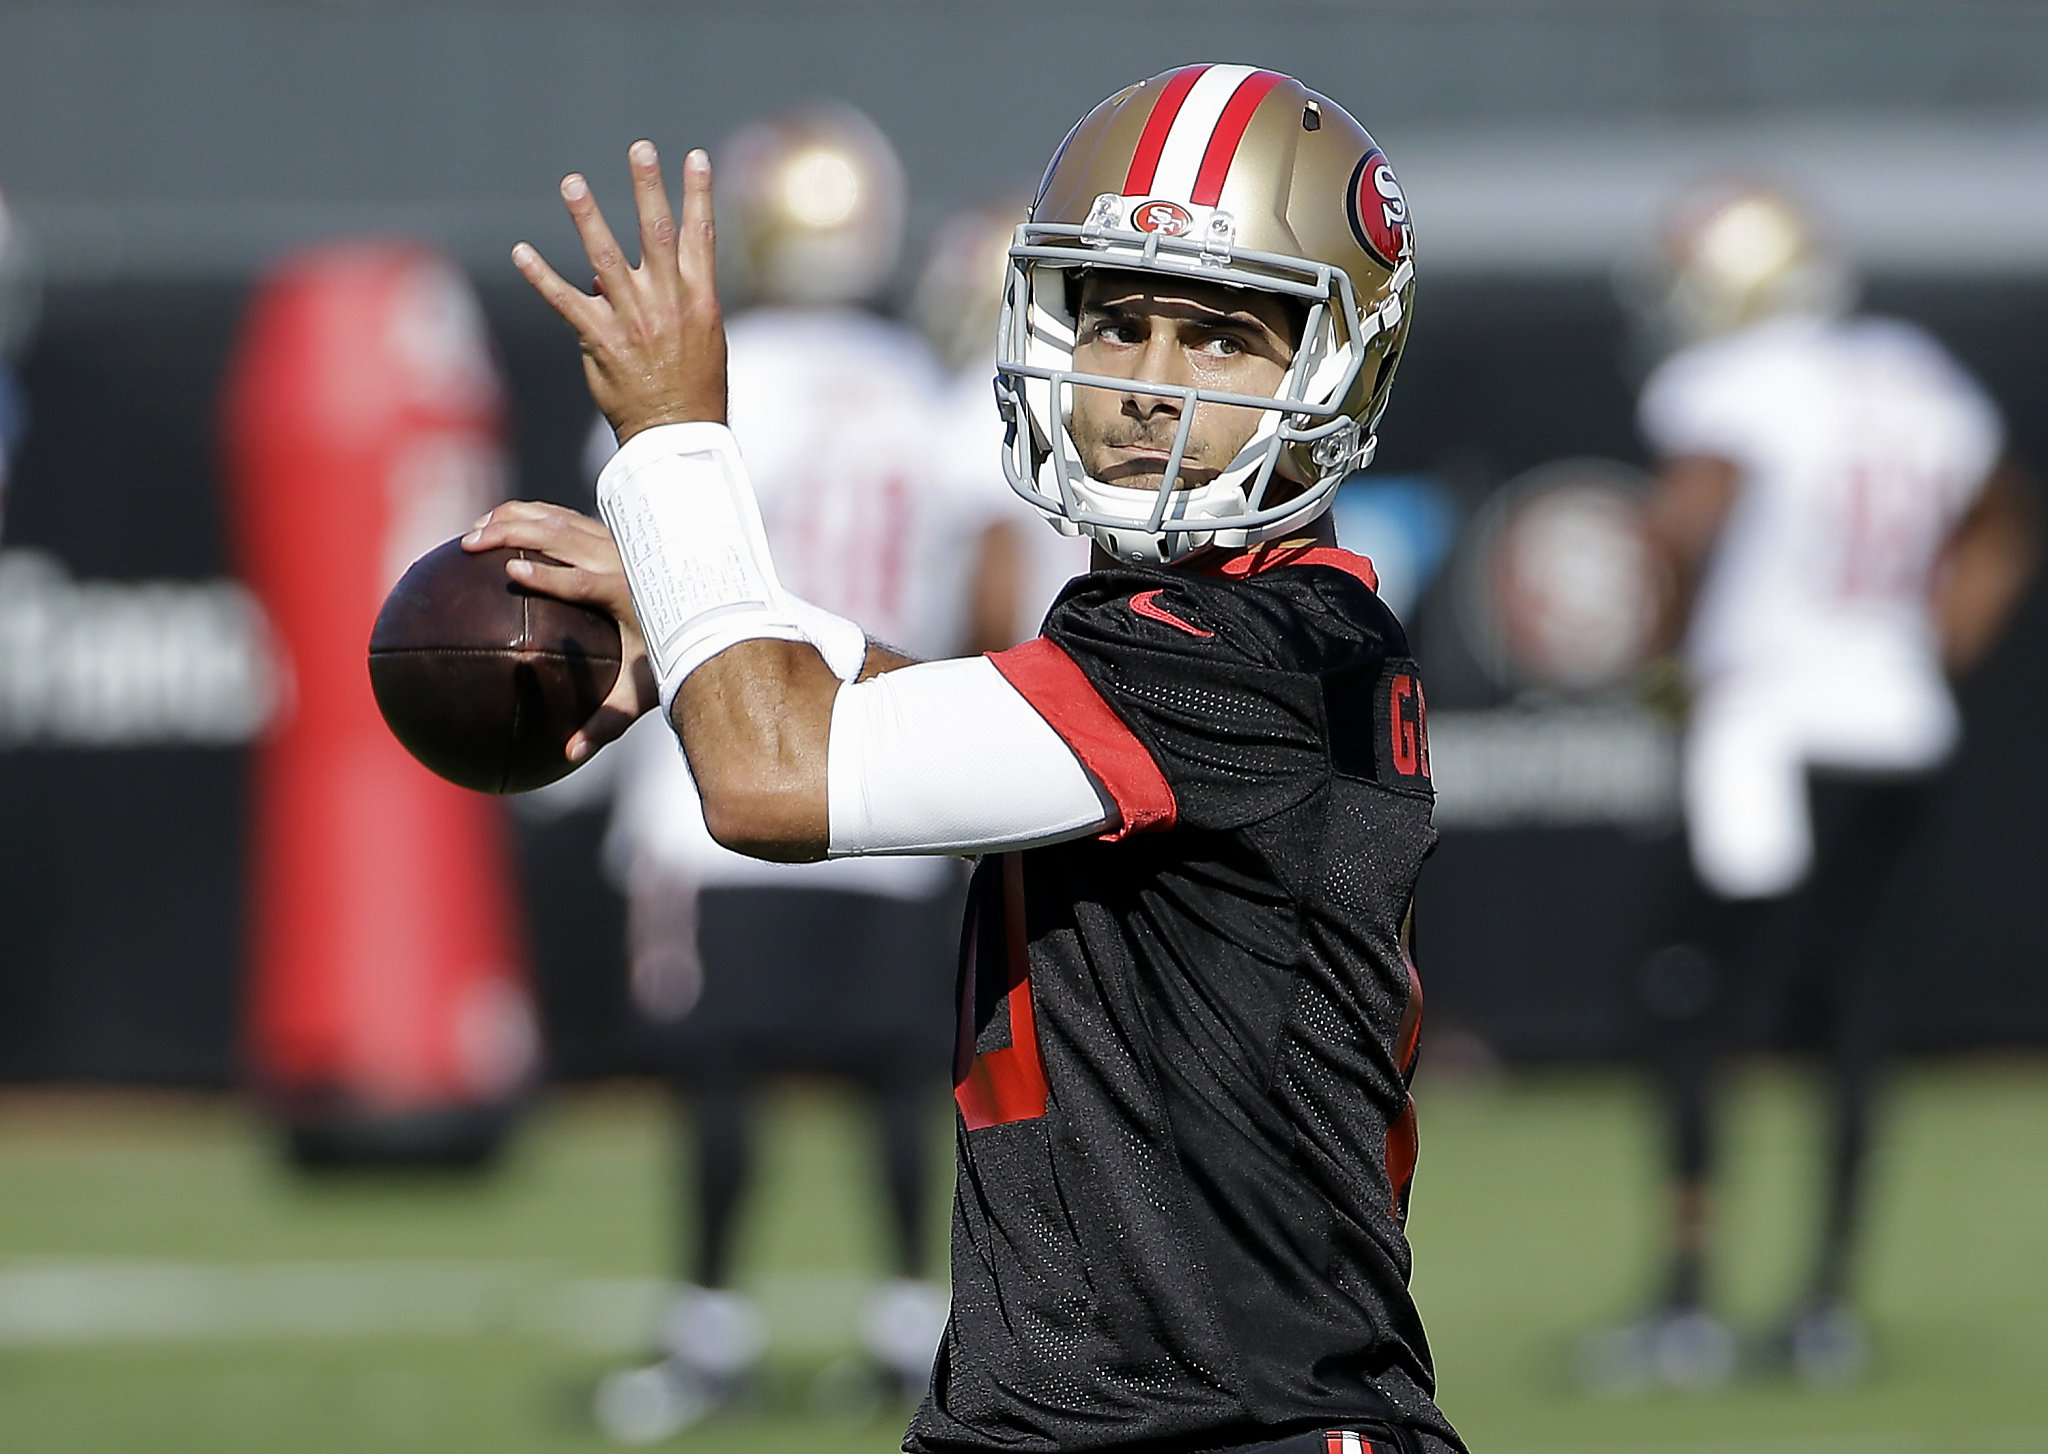 86bf8b7998e 49ers  Kyle Shanahan in no rush to play Jimmy Garoppolo - SFGate